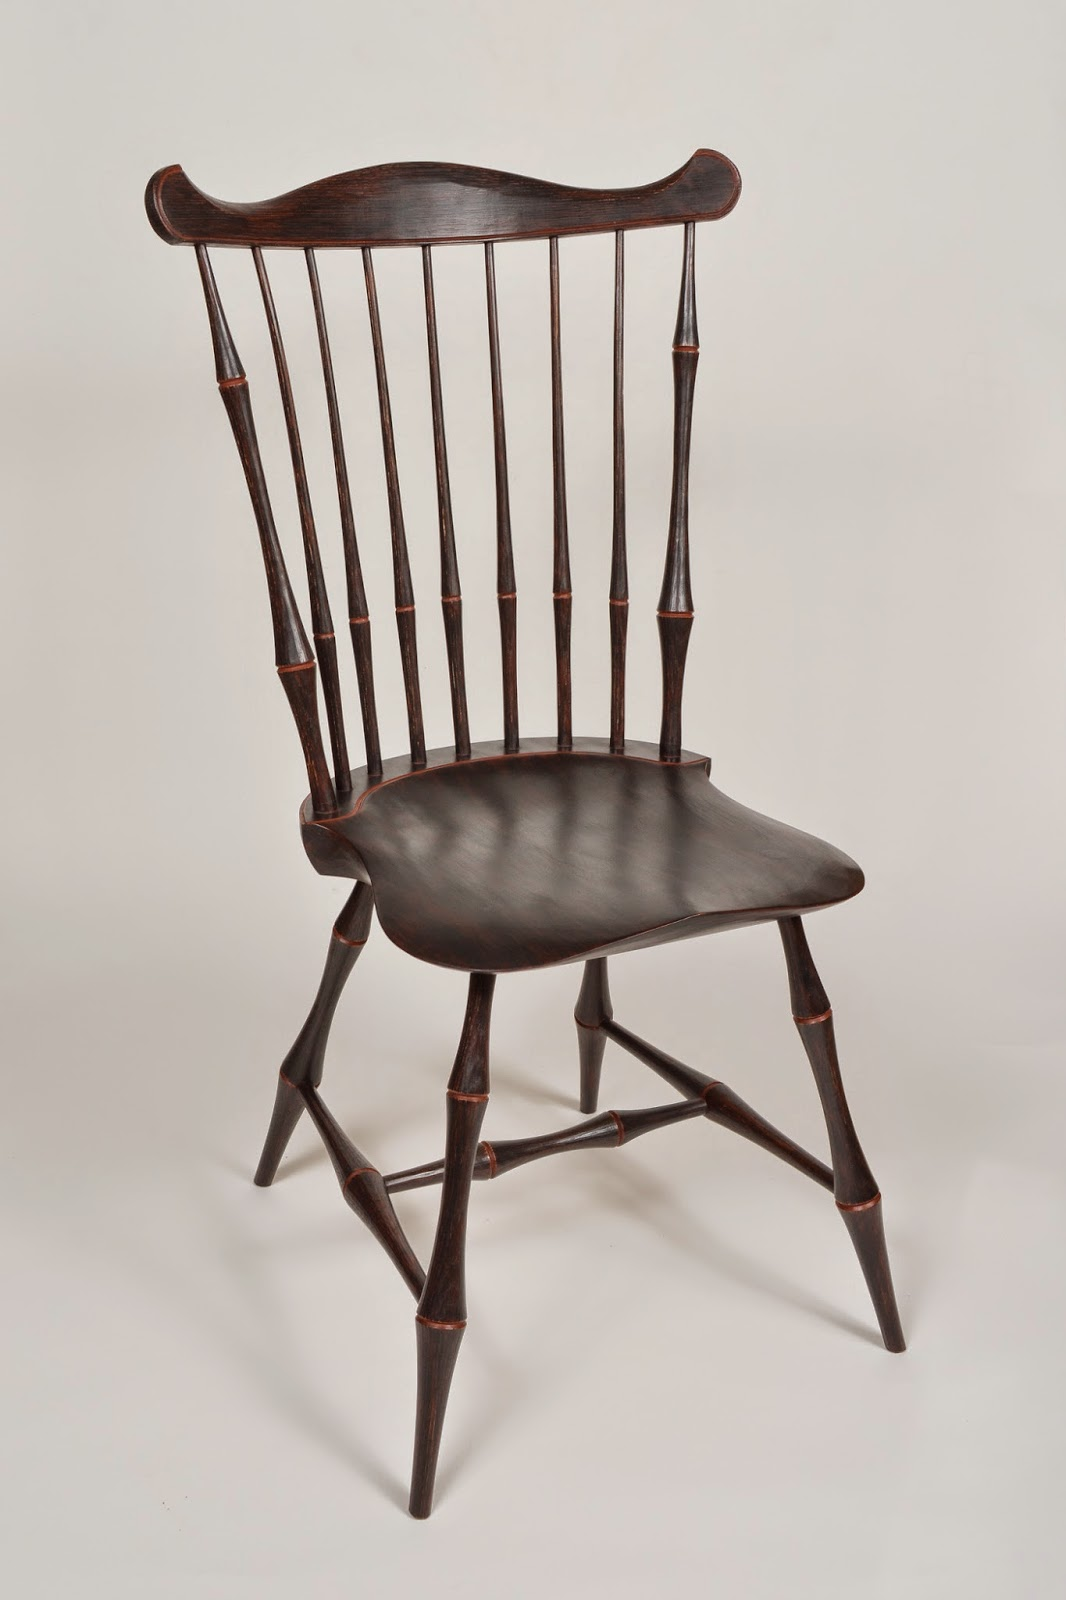 Windsor Style Chairs Small Bedroom Chair Grey Caleb James Chairmaker Planemaker Fan Back